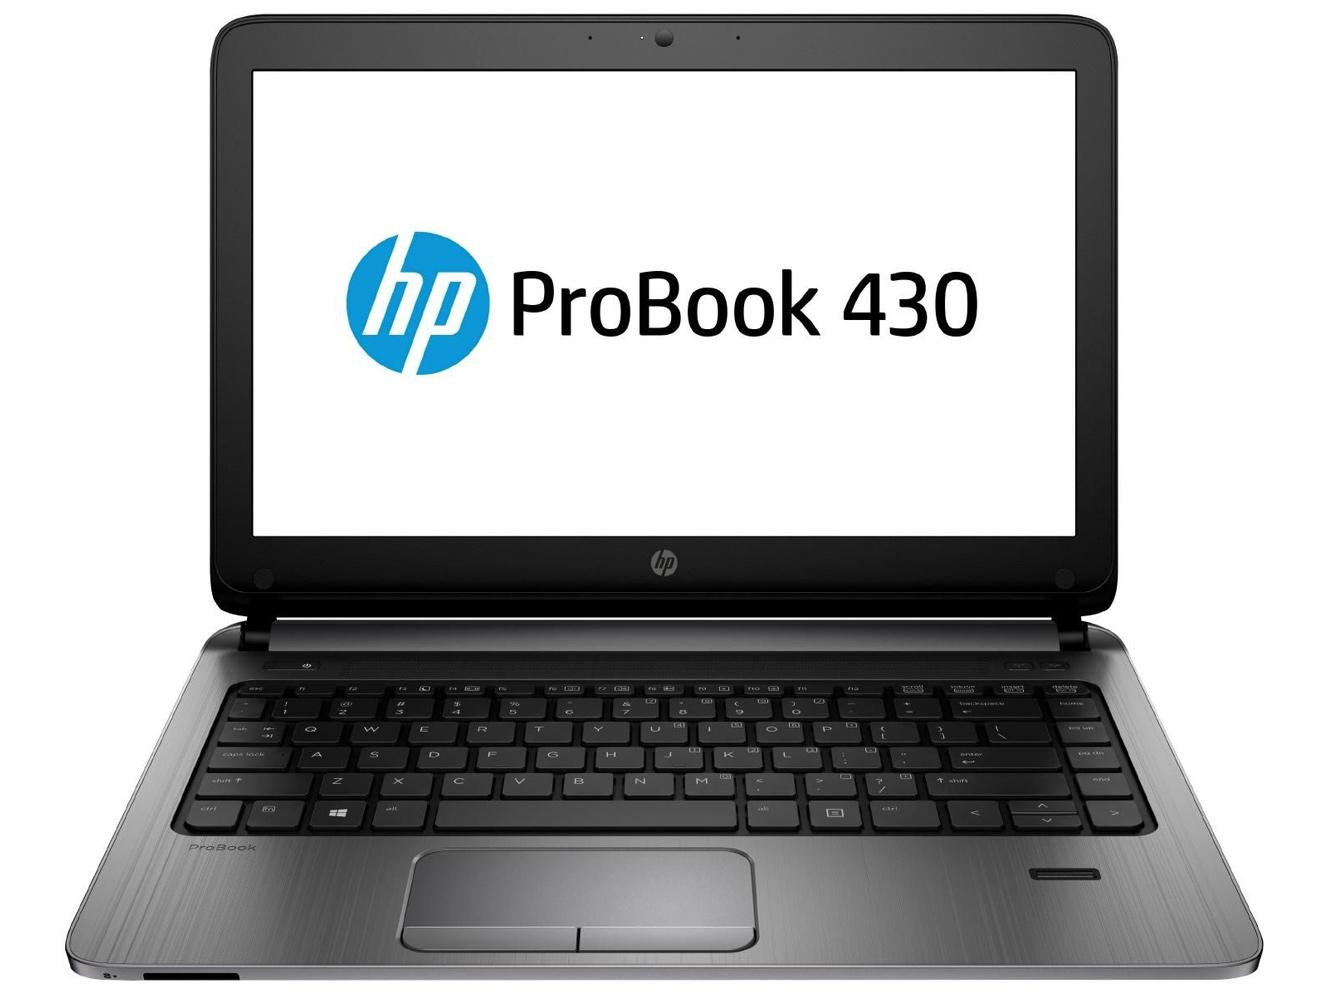 (Refurbished) HP ProBook 430 G2 - 13.3 - 4th Gen Intel Celeron - 4GB - 250GB - Windows 7 Home Basic 64Bit